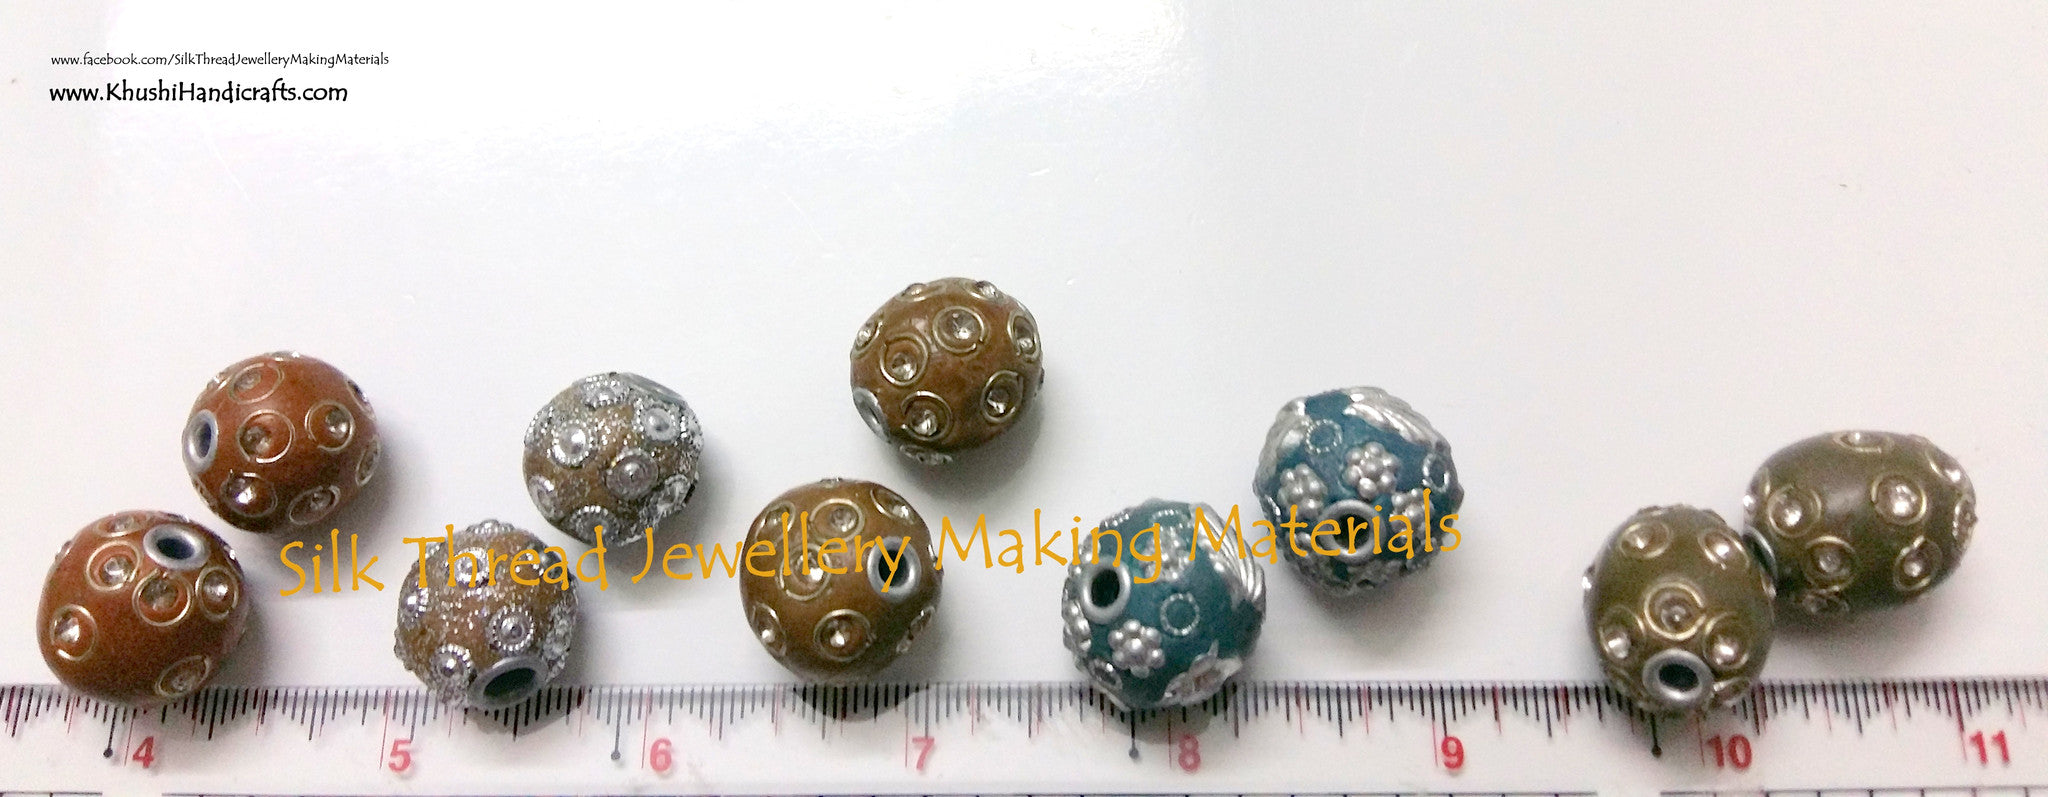 Combo of 5 pairs of Designer Handcrafted Beads.Jewellery Materials